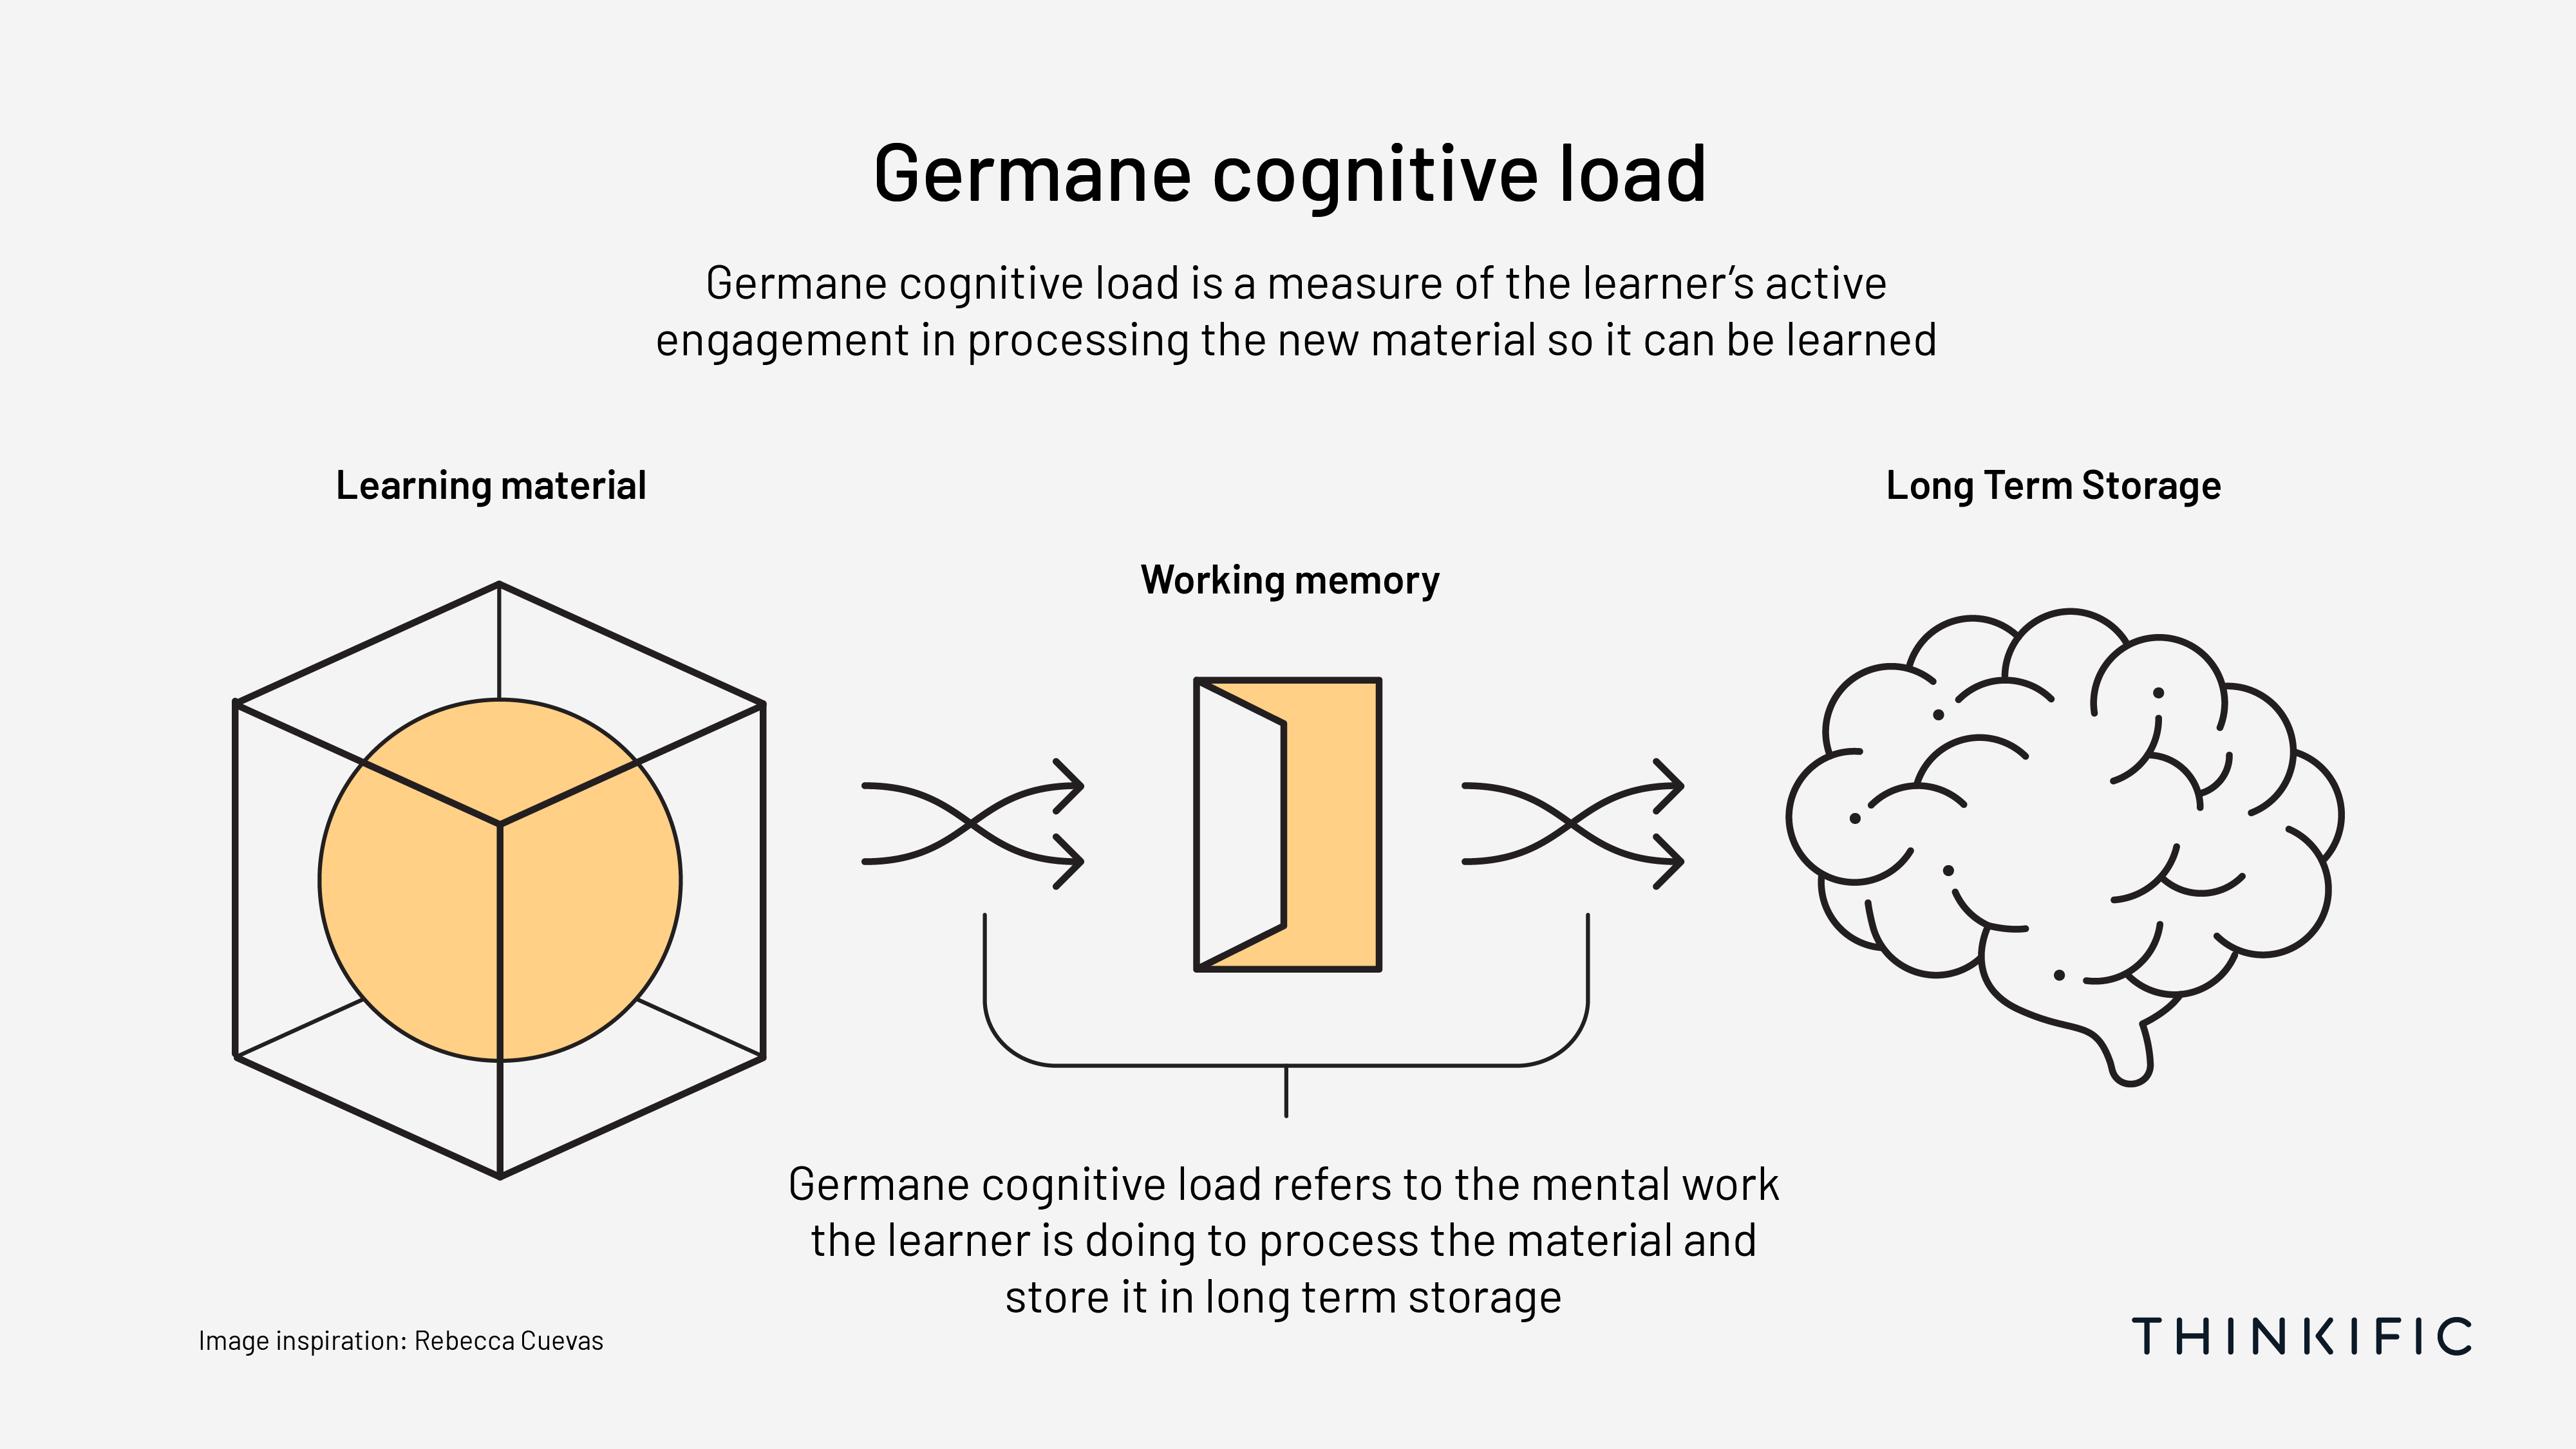 Diagram depicting the mental work the learner is doing to process the material and store it in long term memory